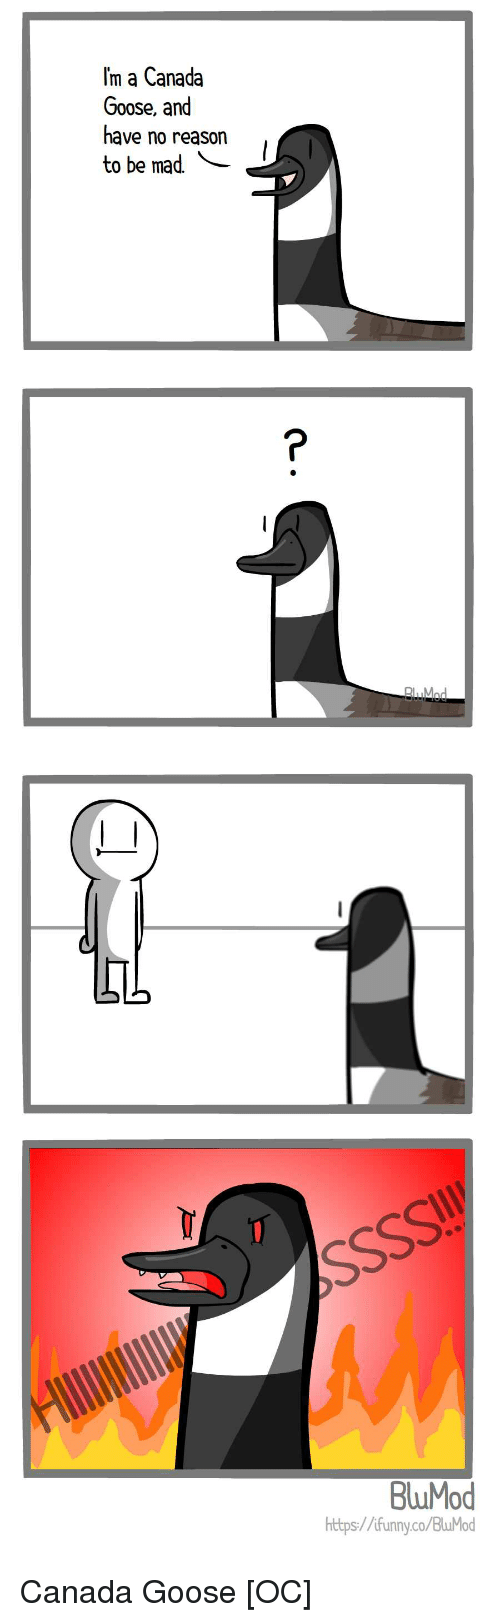 Canada, Canadian, and Mad: m a Canada  Goose, and  have no reason  to be mad  Mod  BluMod  https://ifunnyco/BluMod Canada Goose [OC]